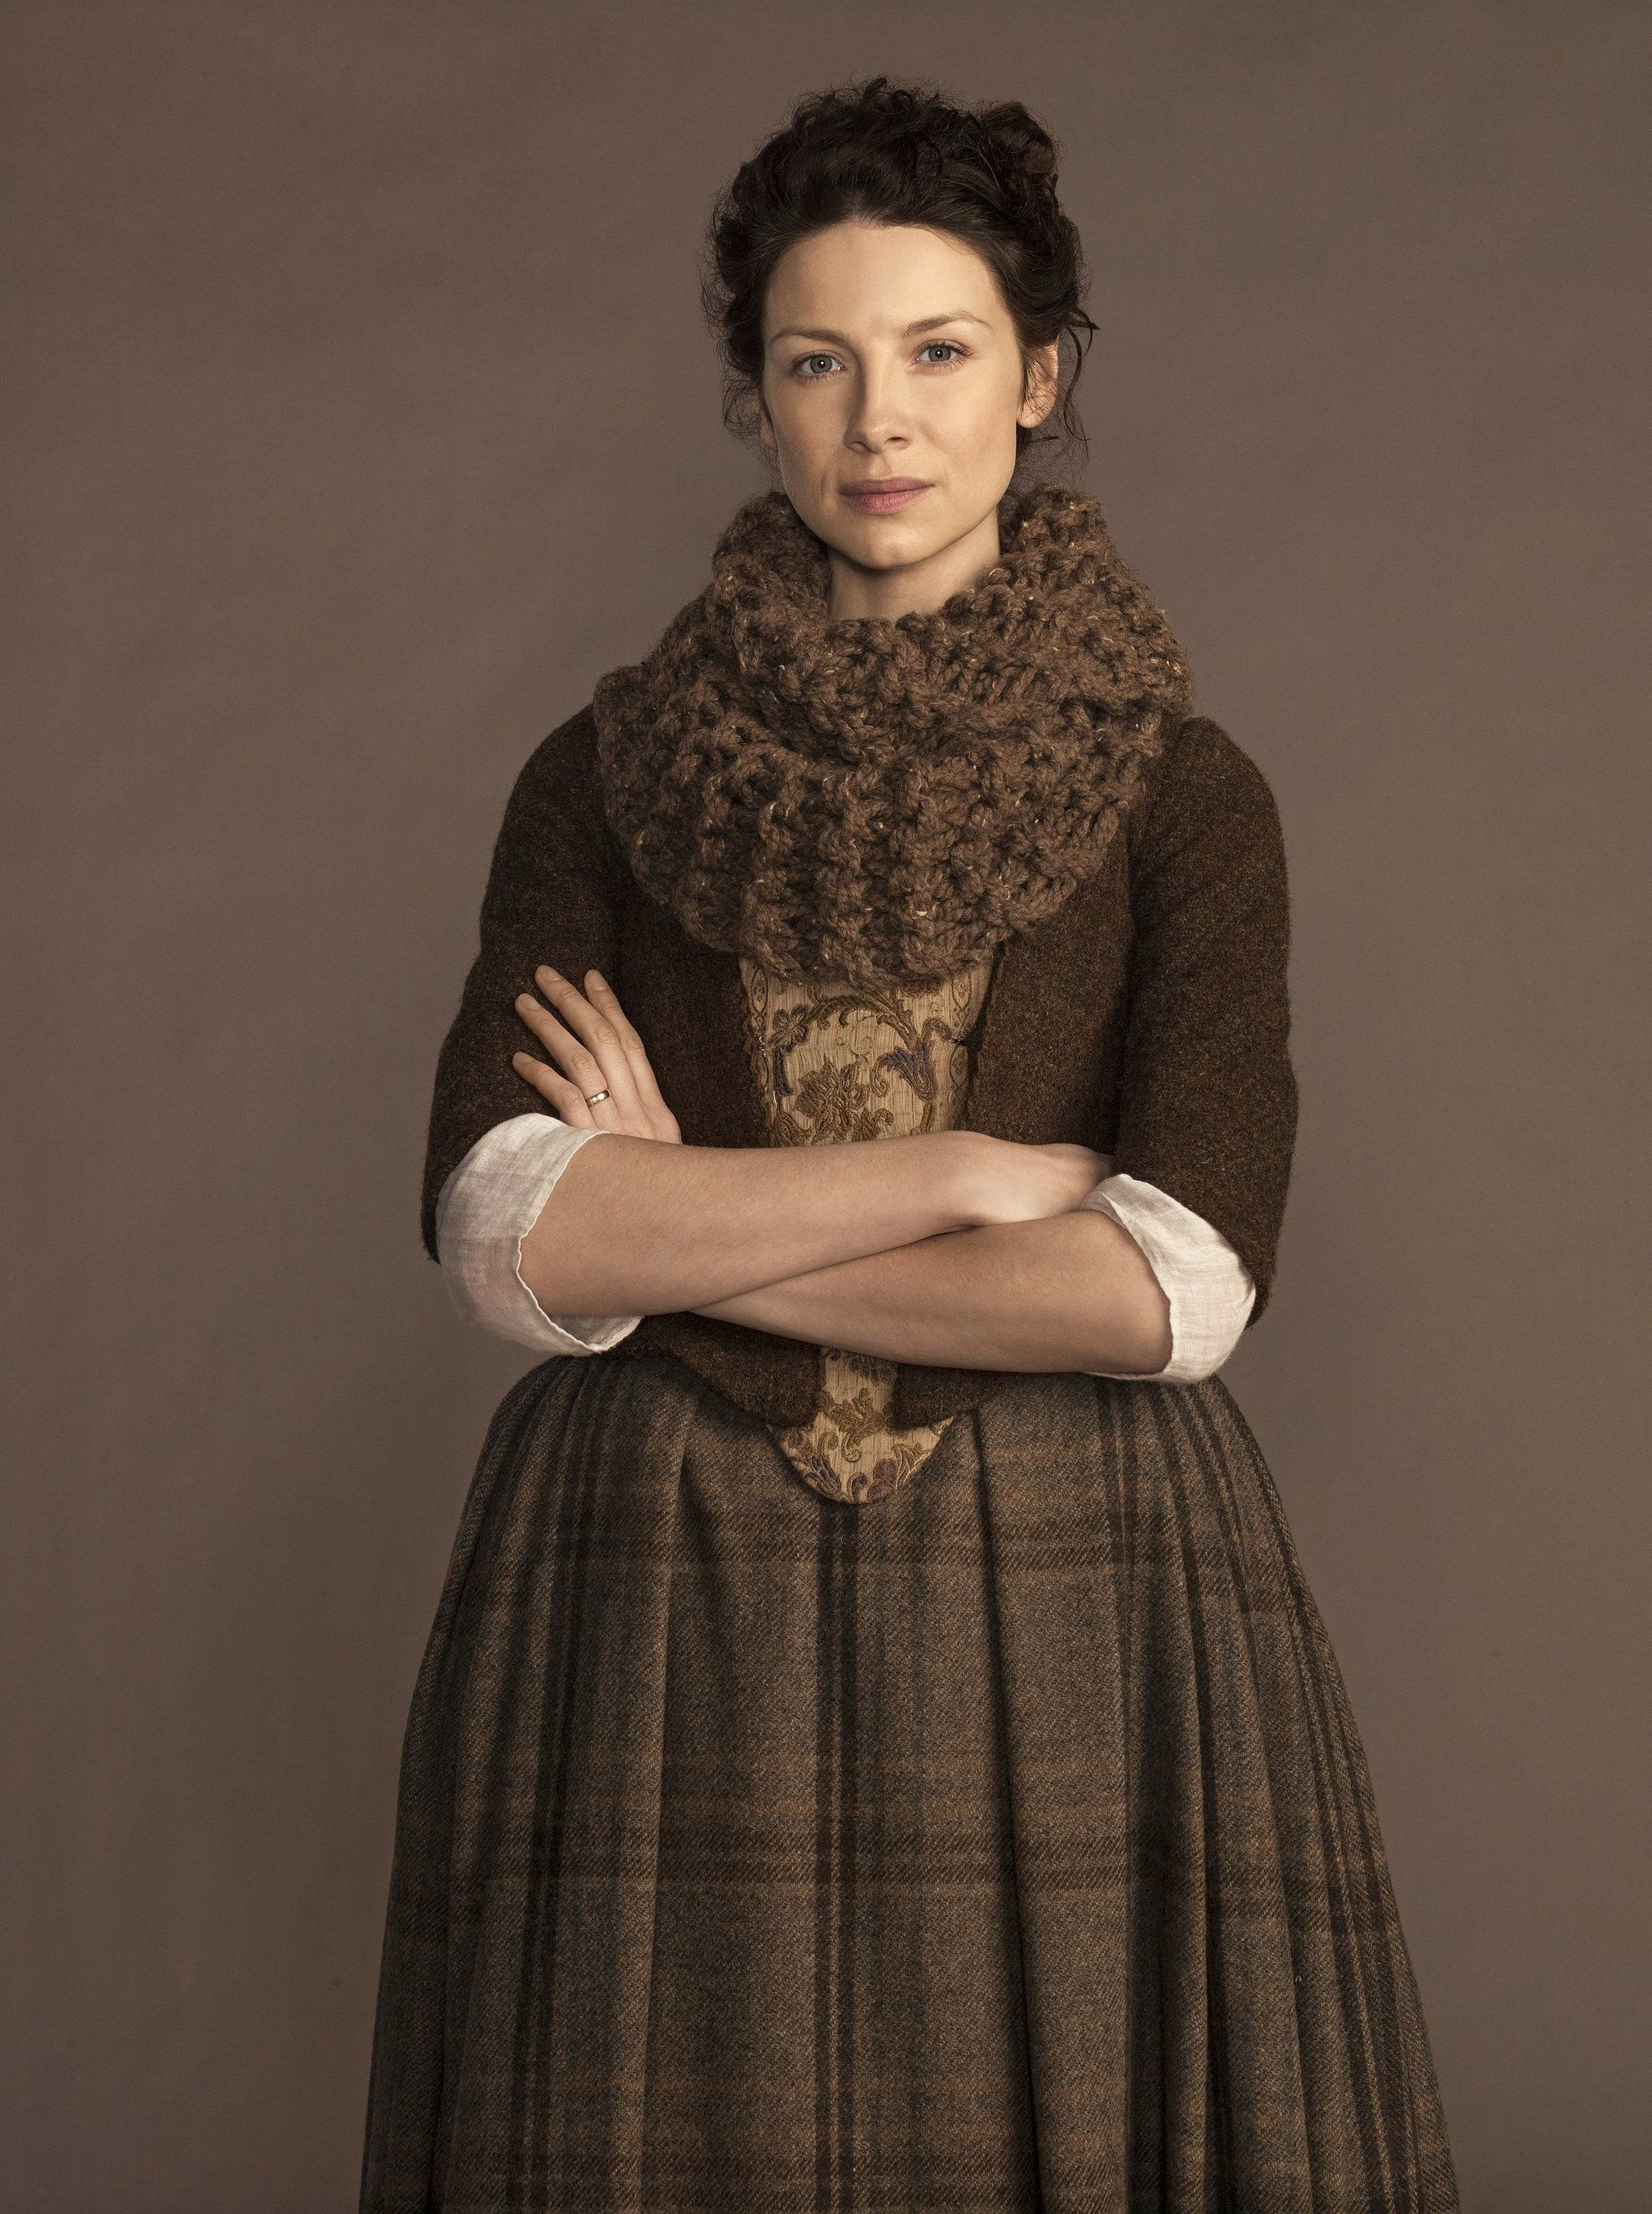 claire from outlander | outlander and halloween costumes